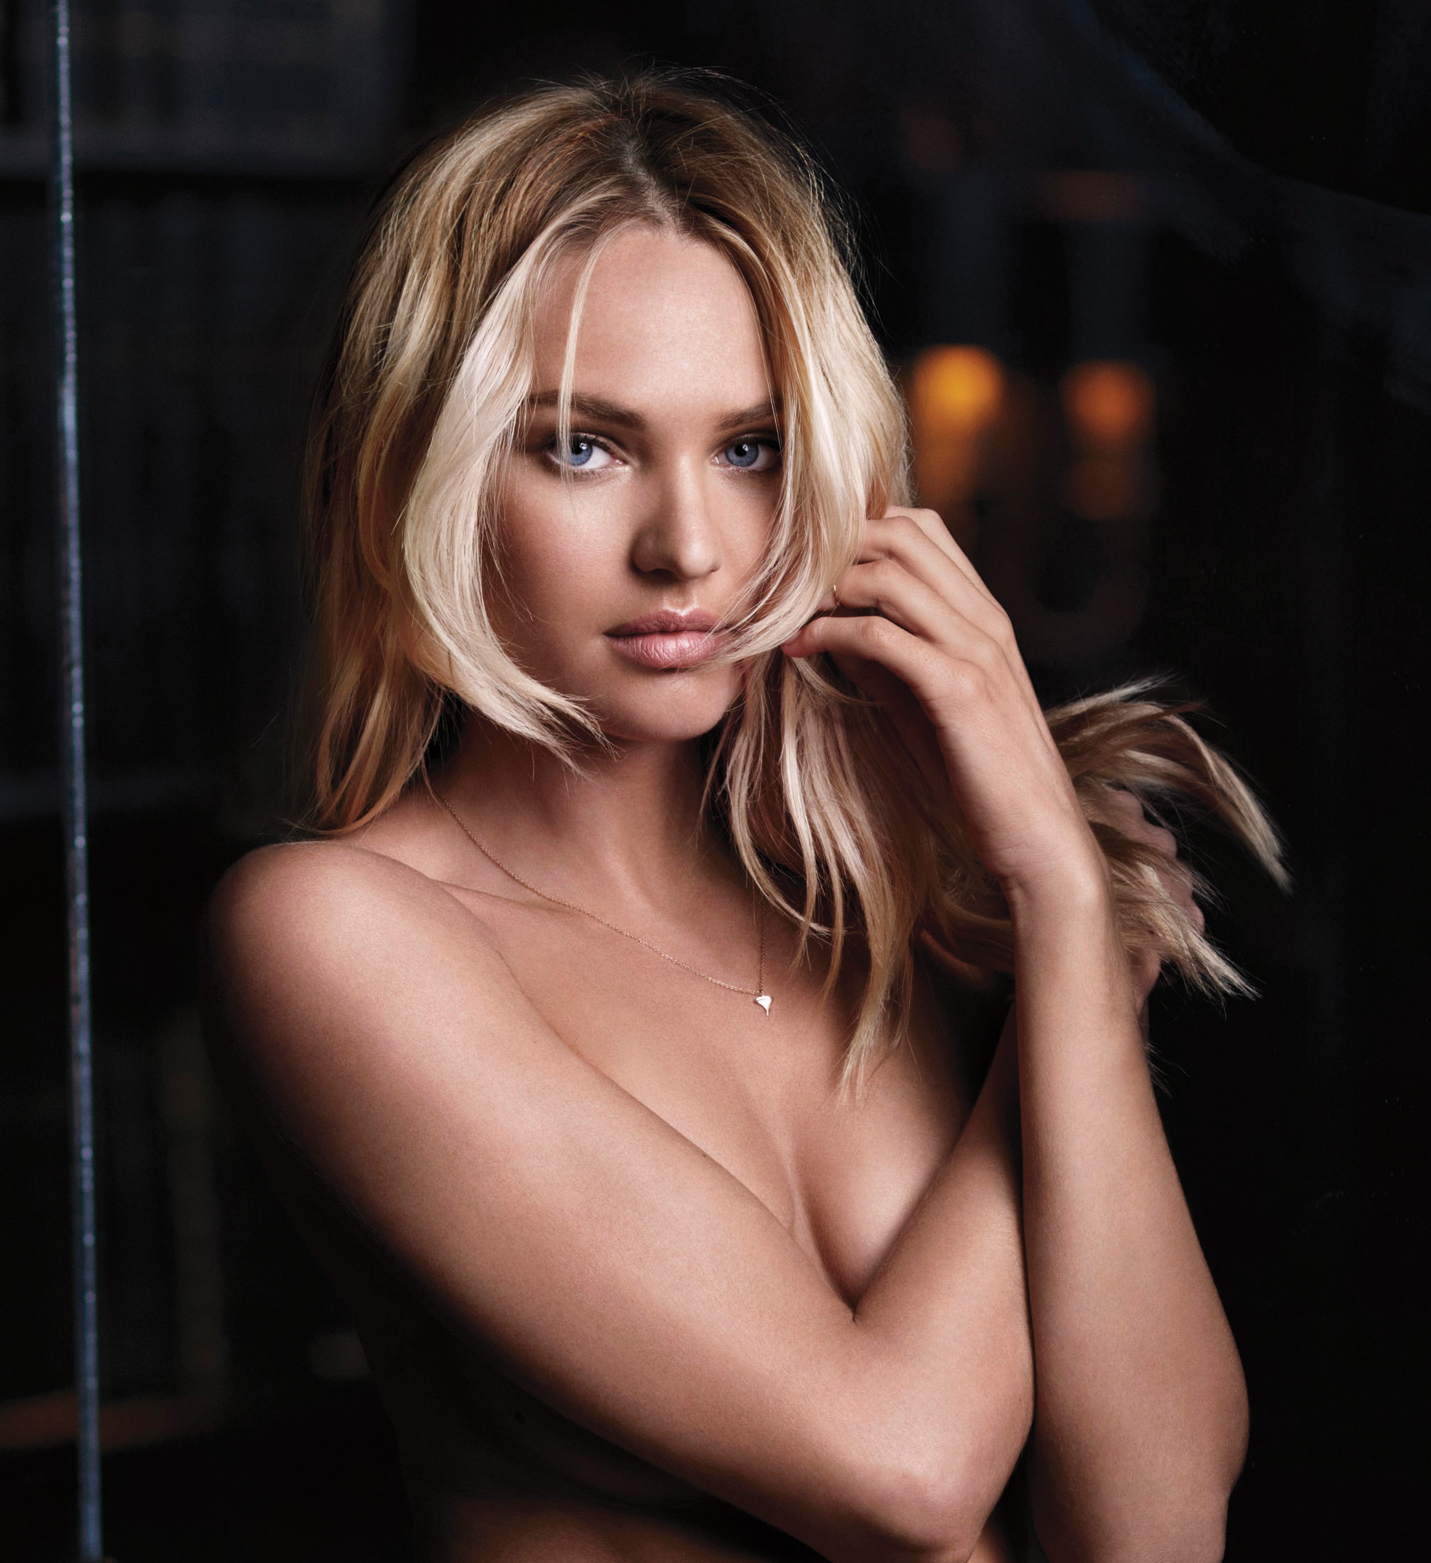 Candice Laurent Facebook Candice Swanepoel